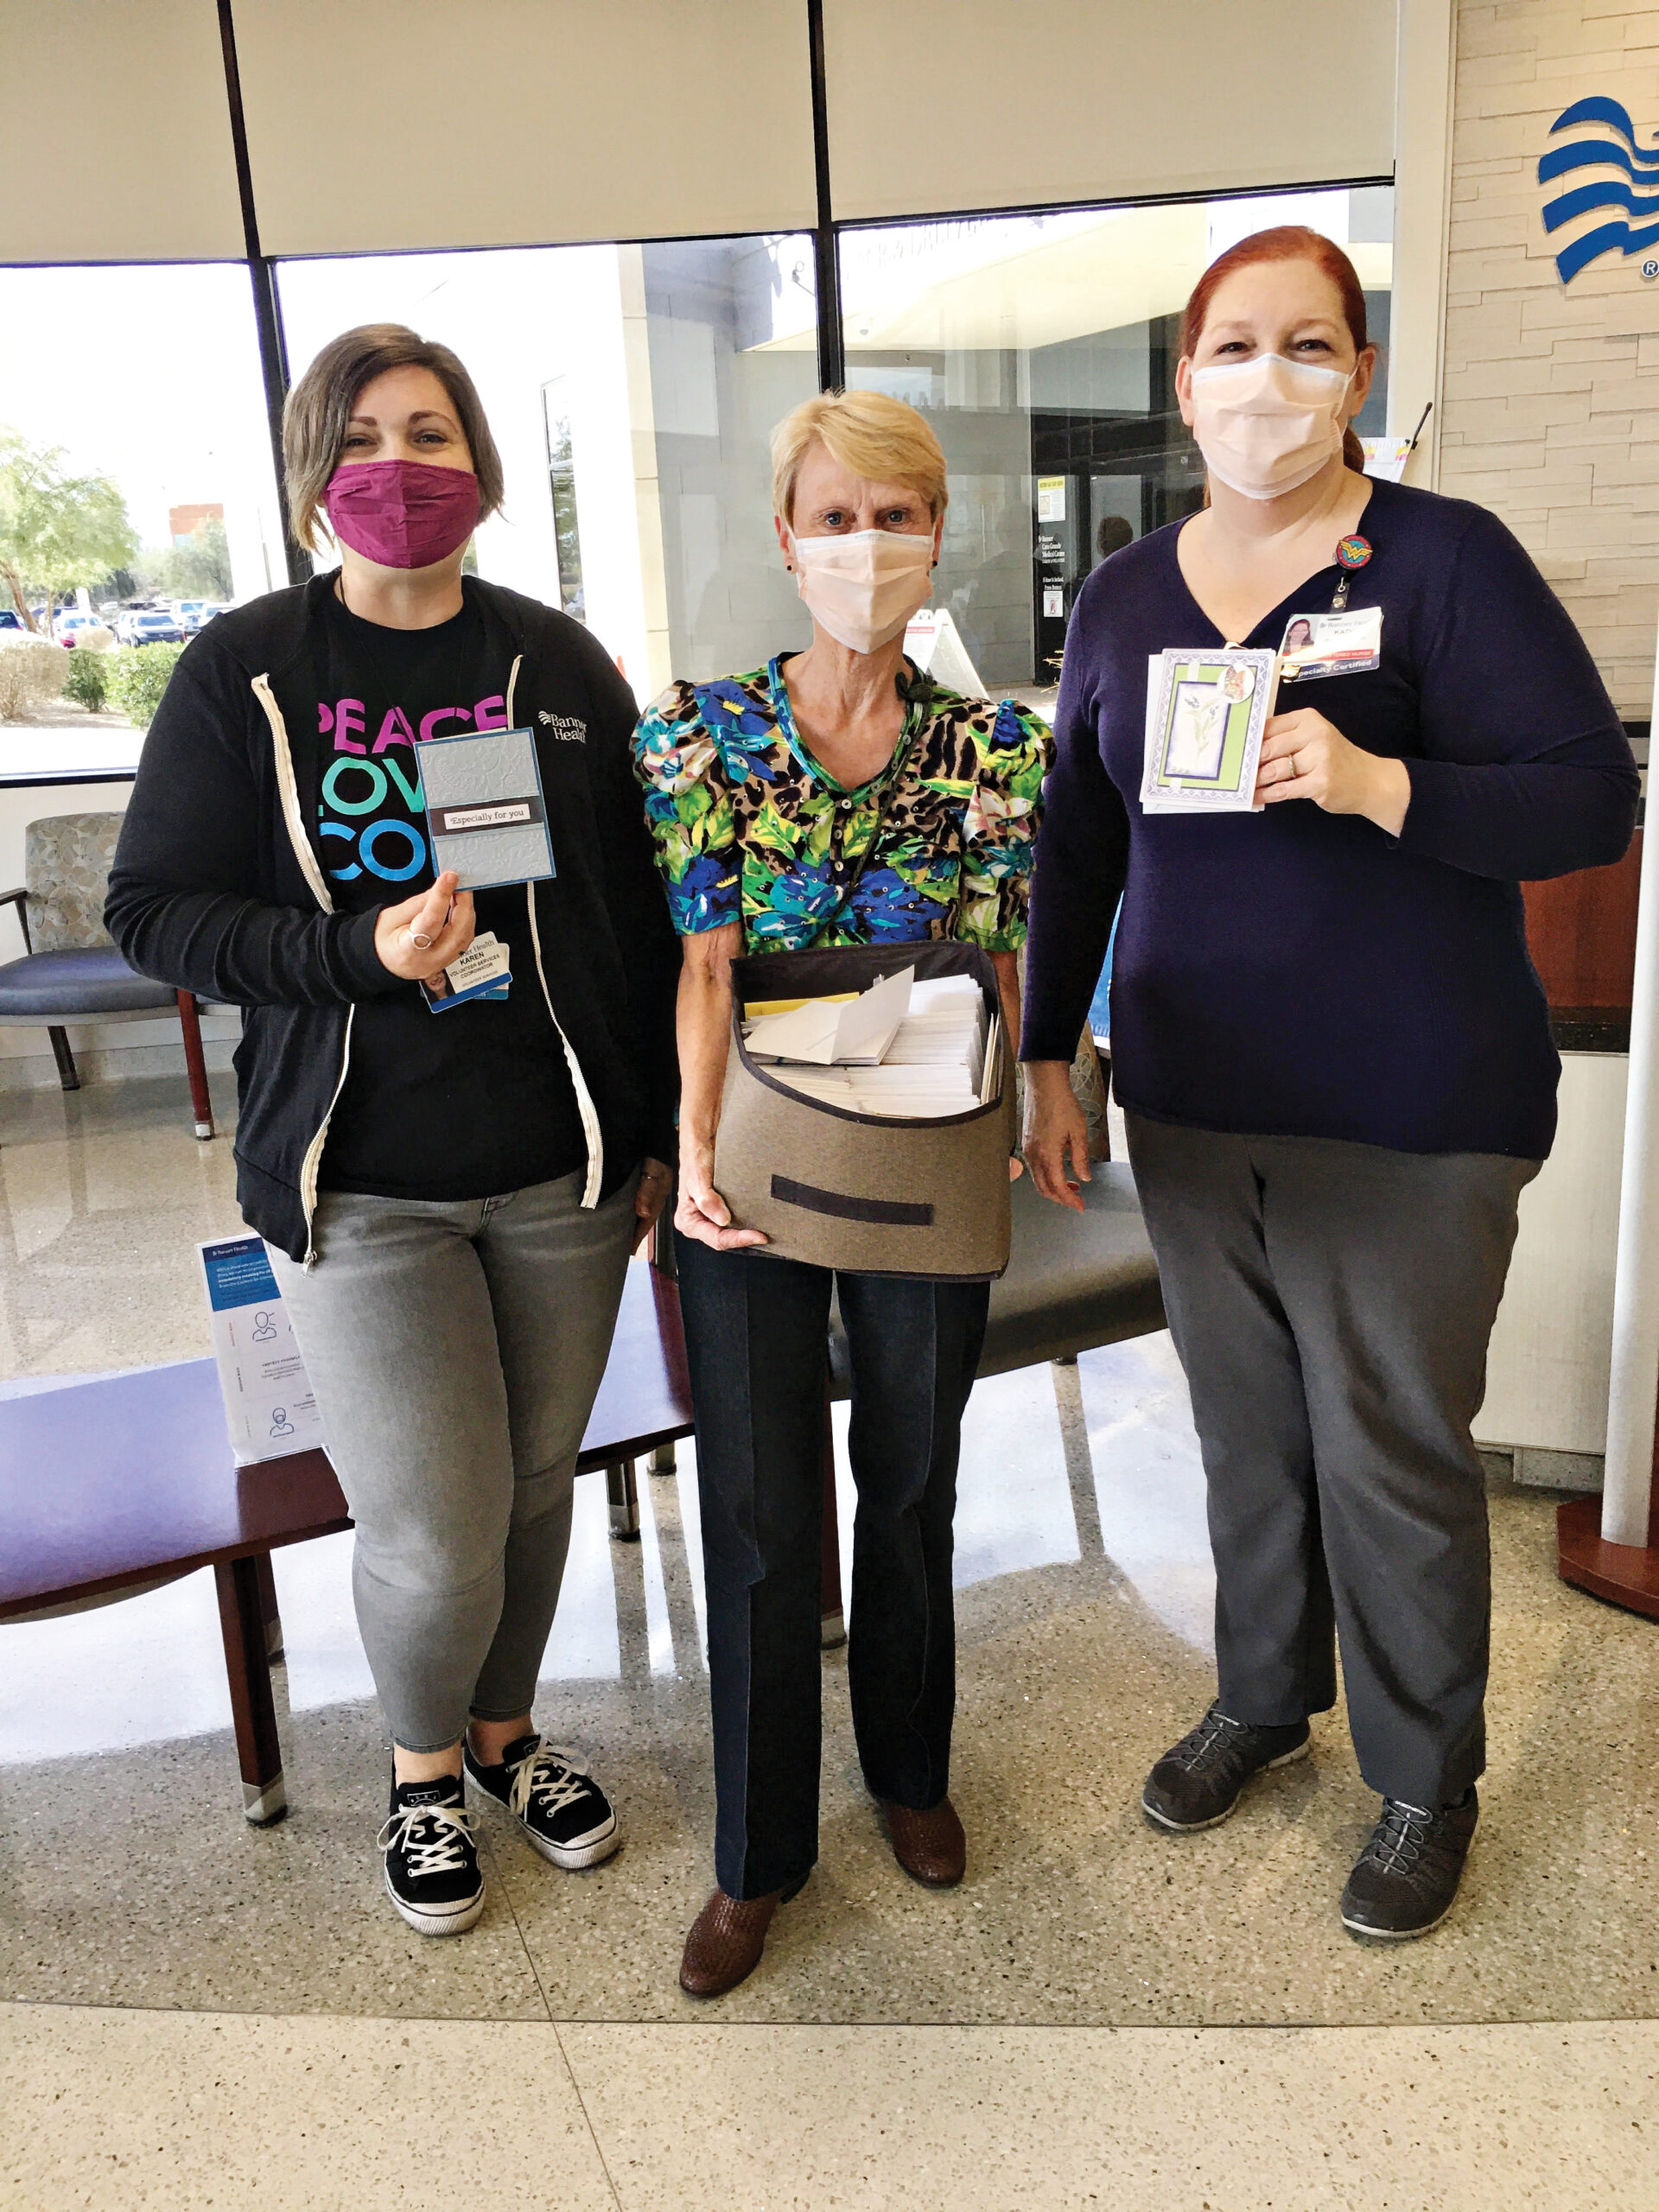 Left to right: Karen Pitman, Volunteer Coordinator; Debra Fosnight, Vice Chair Robson Papercrafting Club; and Kathy Evans, RN, Director of COVID Care